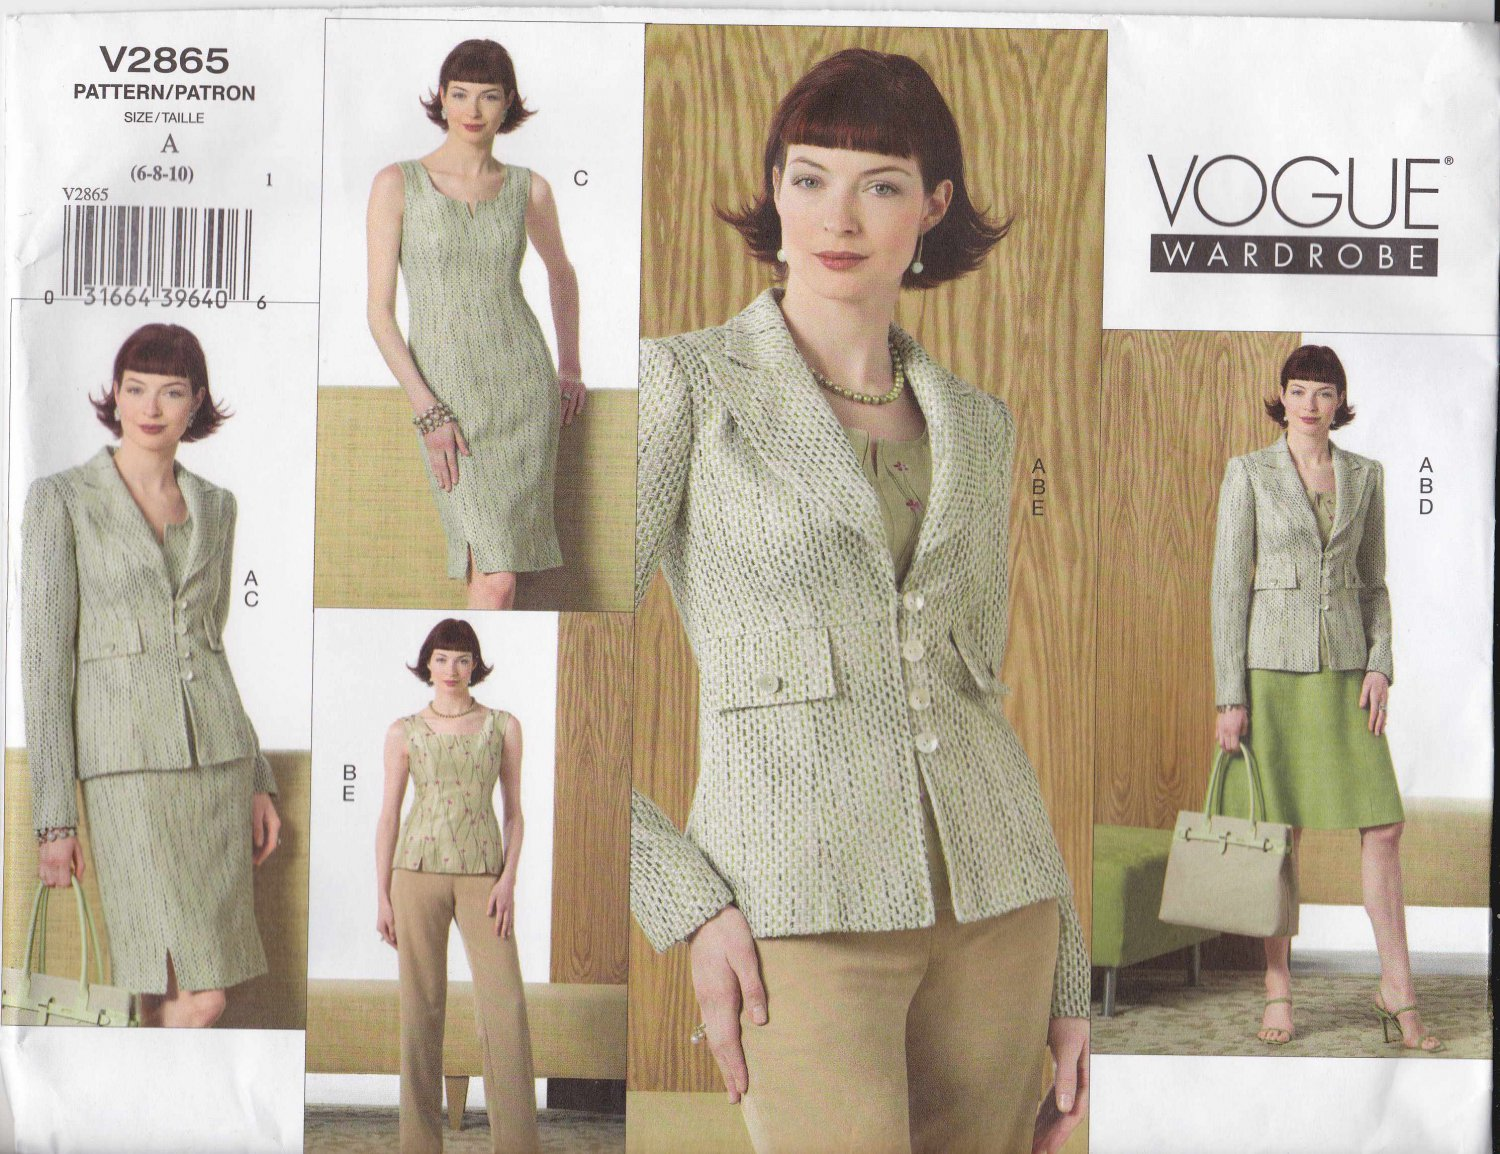 Vogue Sewing Pattern 2865 Misses Size 6-8-10 Wardrobe Top Pants Jacket Skirt Dress